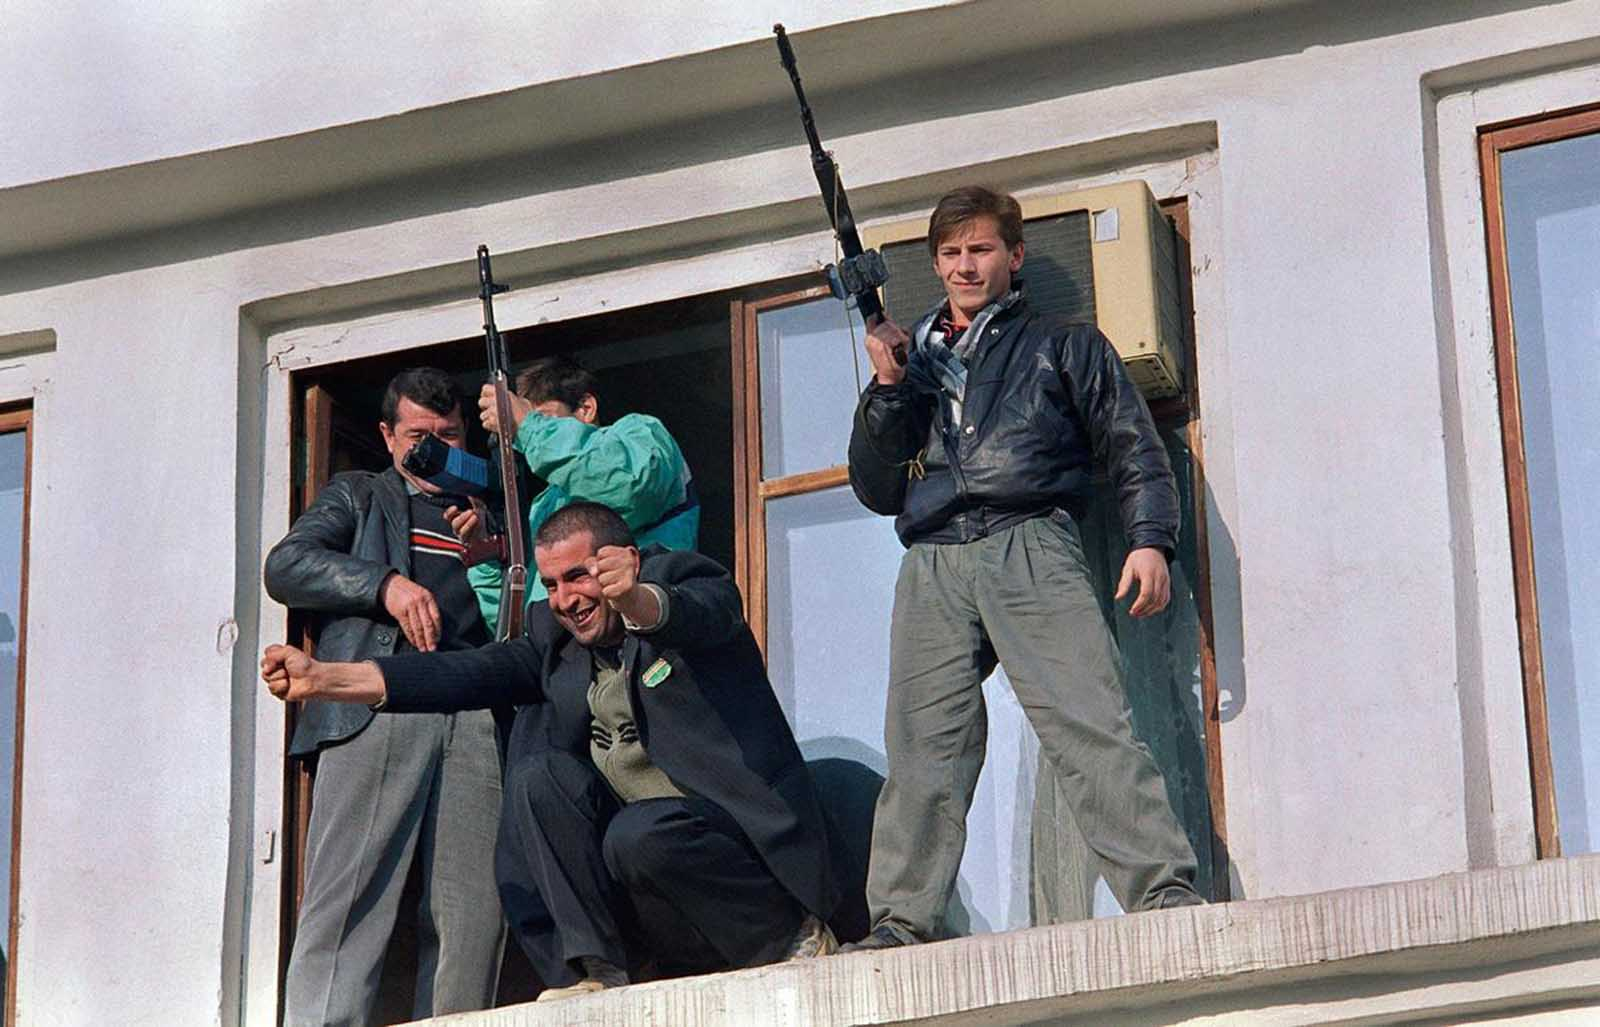 A jubilant Chechen secessionist with clenched fists opens his arms to the crowd during a rally in Grozny, on November 14, 1991, to celebrate the pullout of Soviet troops from the Muslim enclave in Southern Russia.